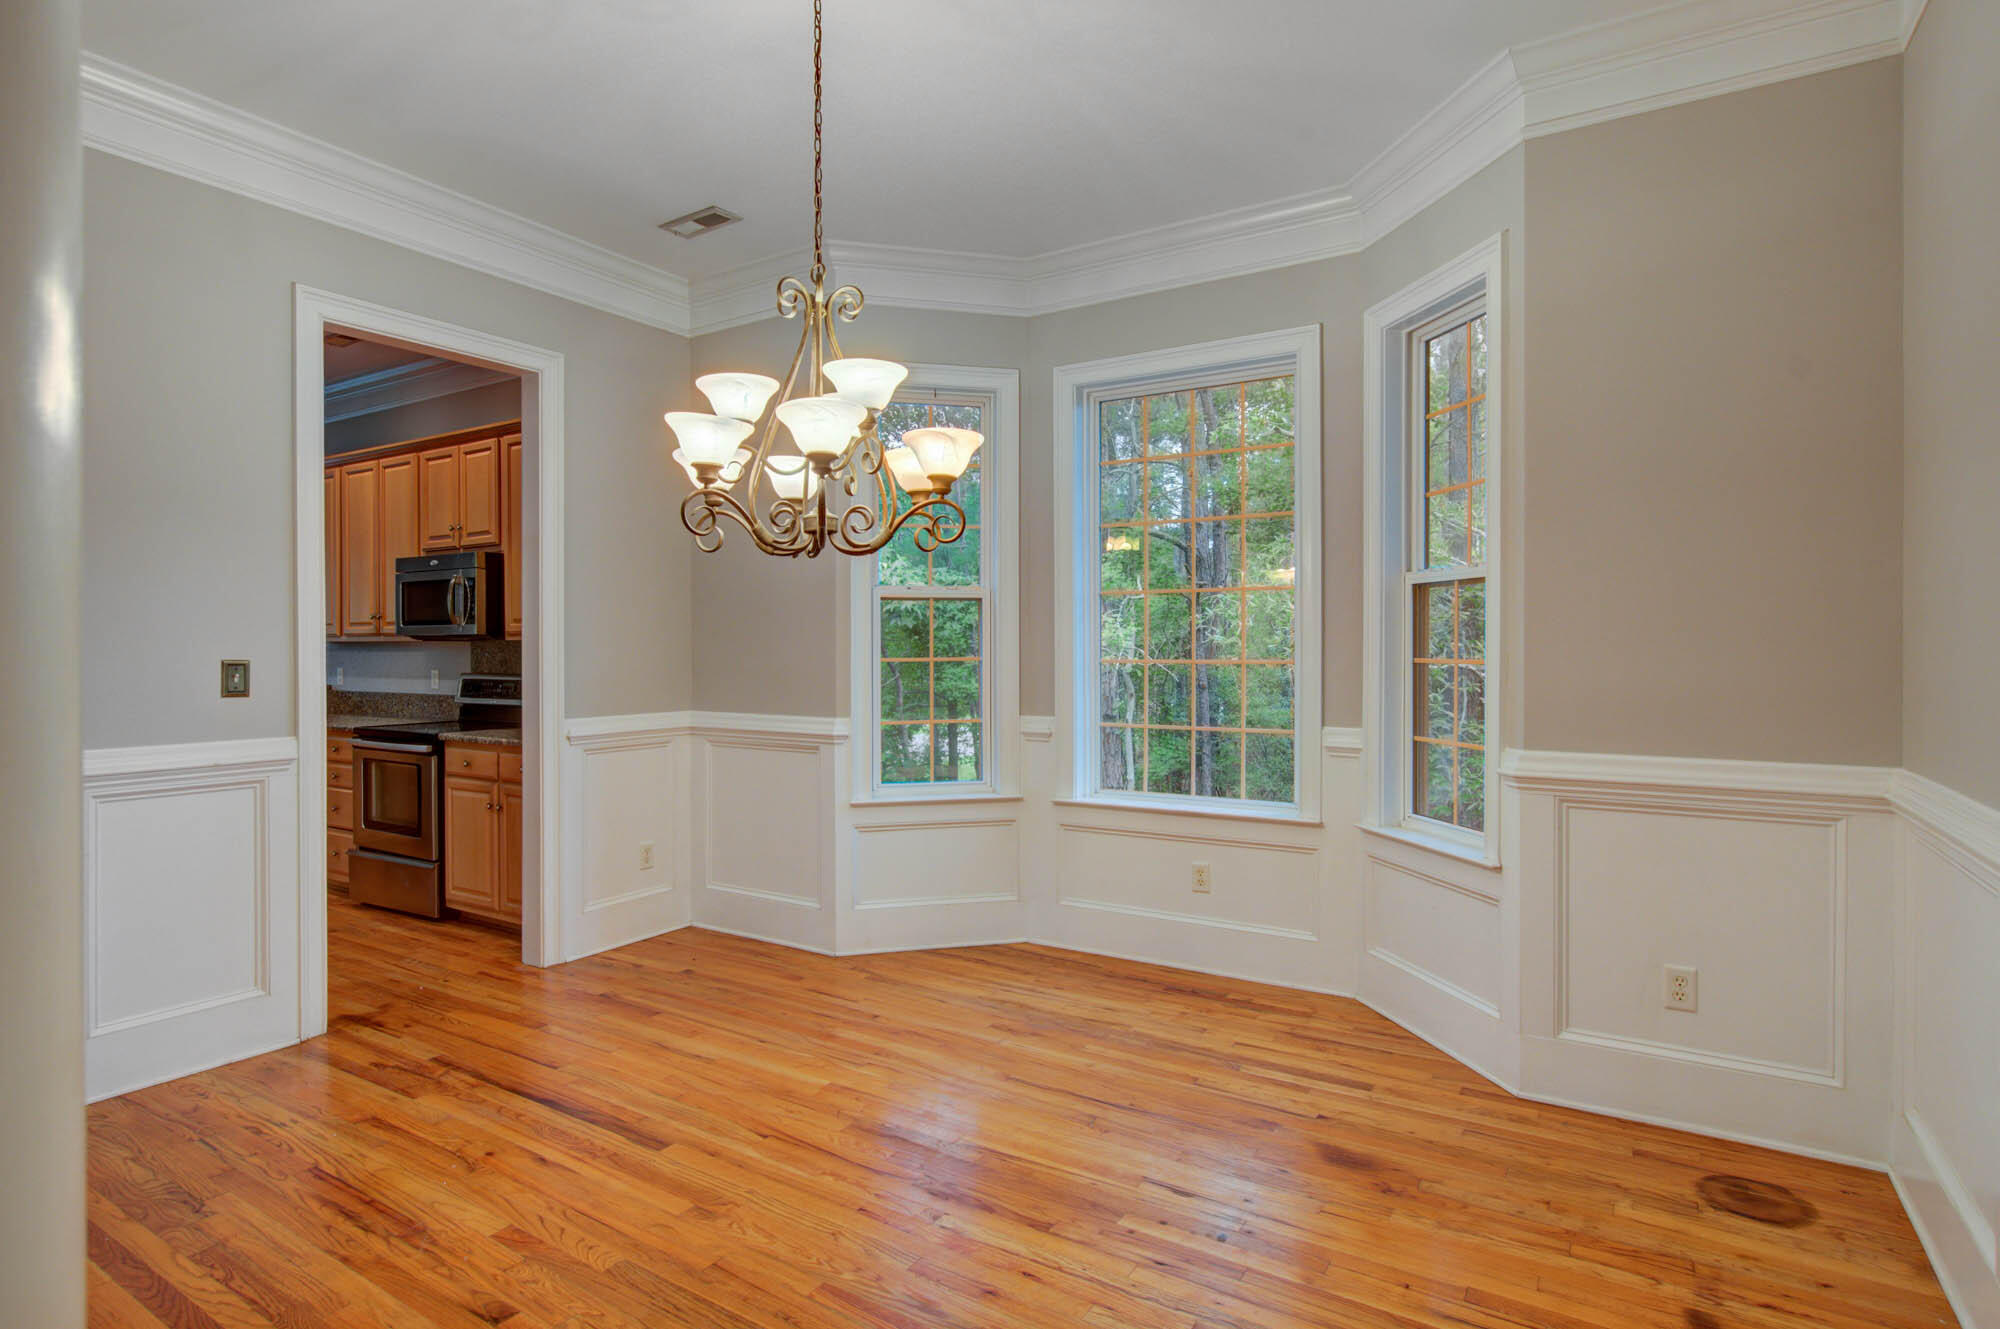 Rivertowne Country Club Homes For Sale - 1741 Rivertowne Country Club, Mount Pleasant, SC - 35